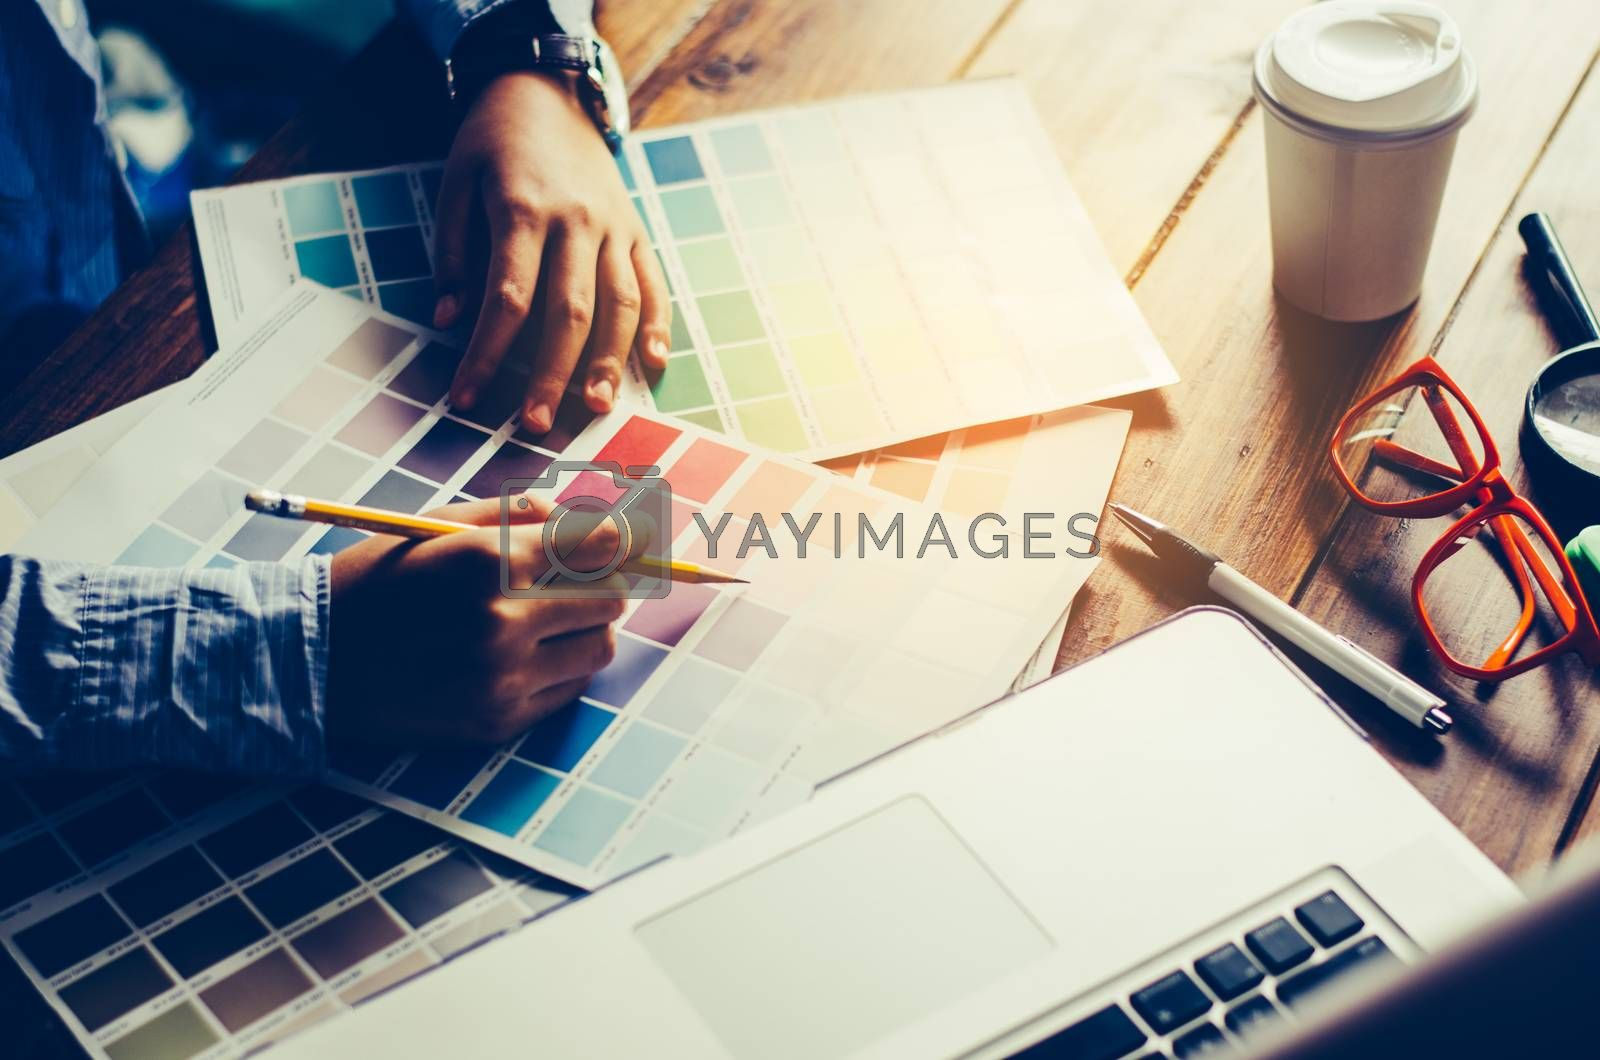 Graphic designer architects who work with laptops and color comparison tables for design work.